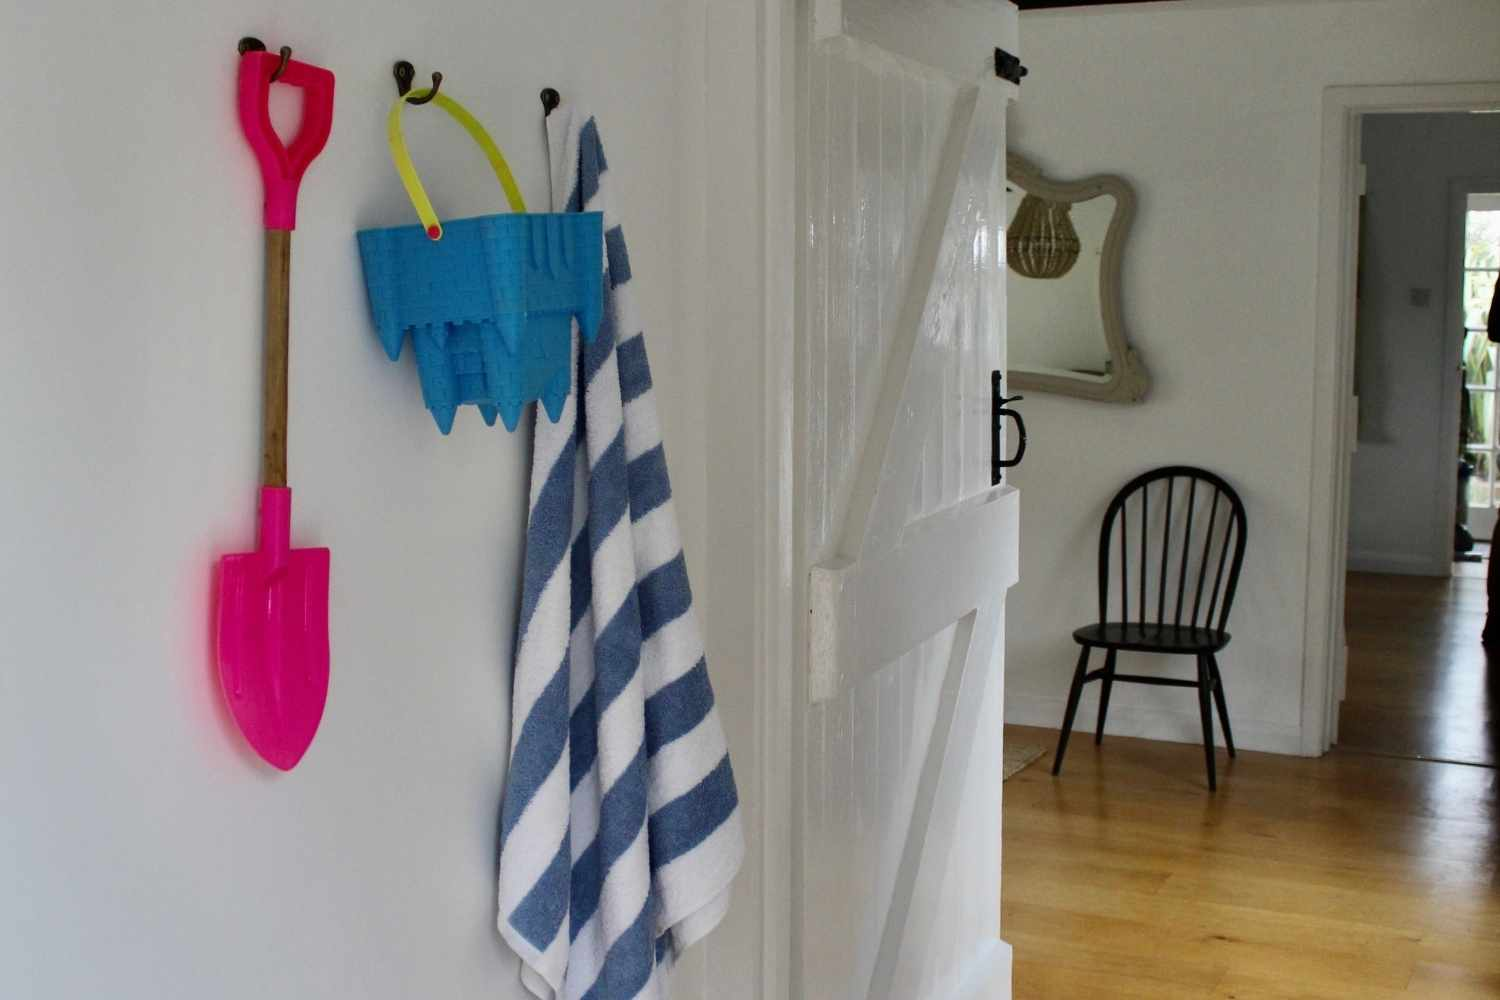 Hallway - complete with beach toys